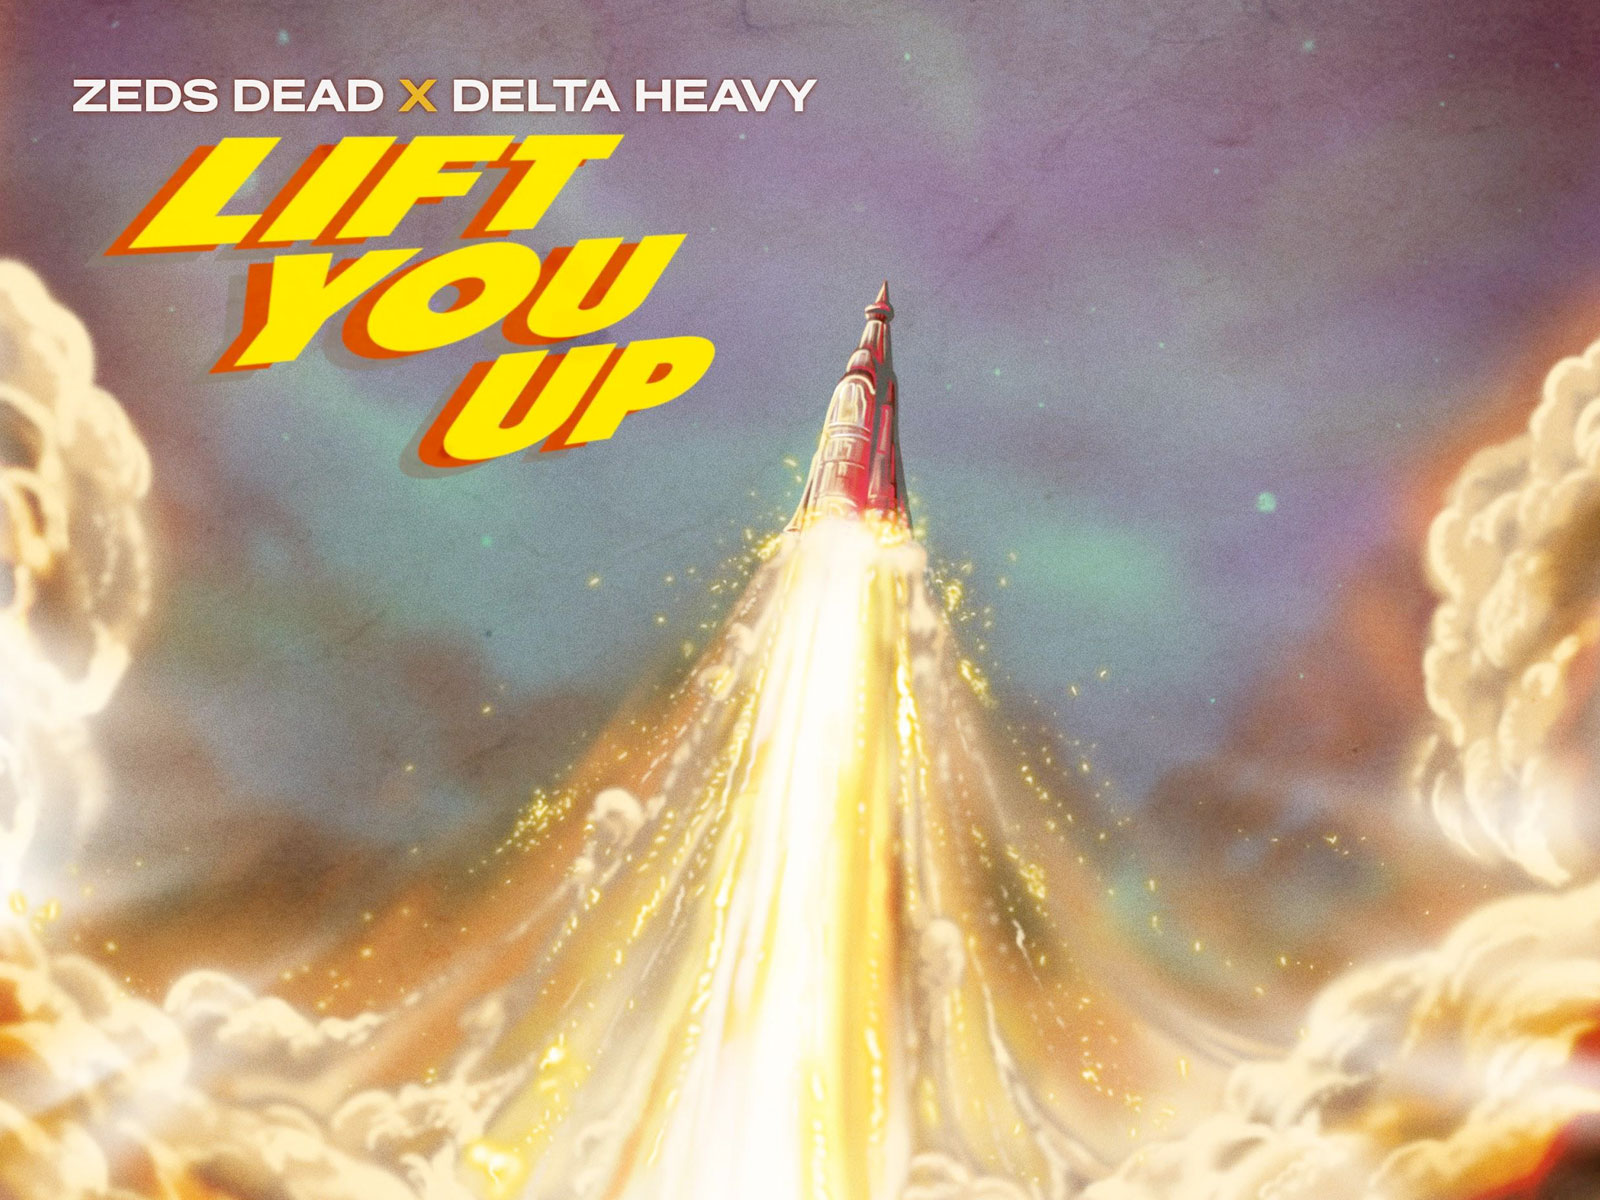 zeds-dead-delta-heavy-lift-you-up-oz-edm